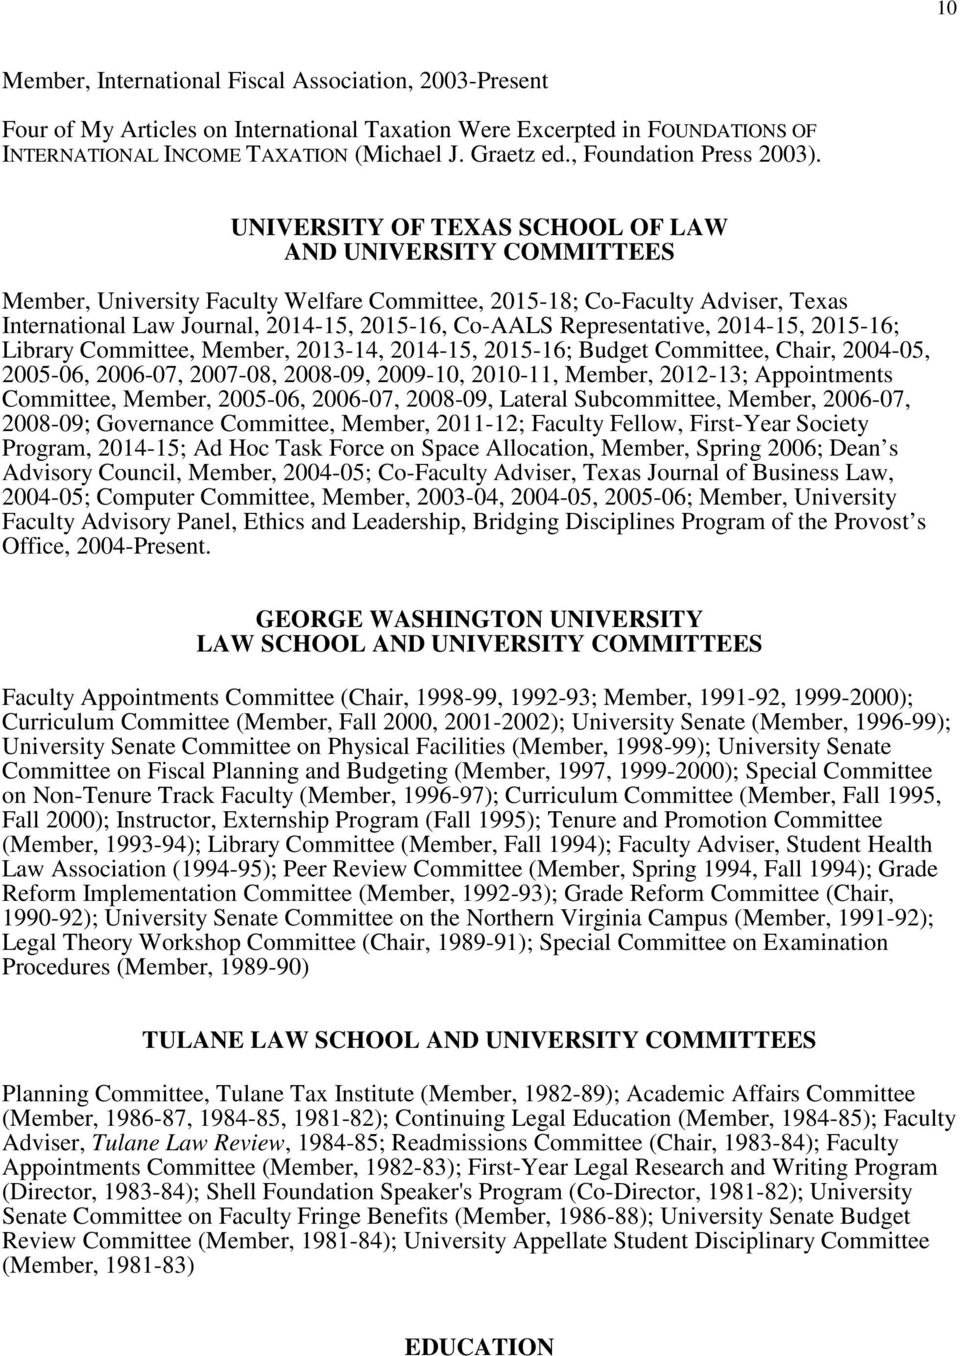 UNIVERSITY OF TEXAS SCHOOL OF LAW AND UNIVERSITY COMMITTEES Member, University Faculty Welfare Committee, 2015-18; Co-Faculty Adviser, Texas International Law Journal, 2014-15, 2015-16, Co-AALS